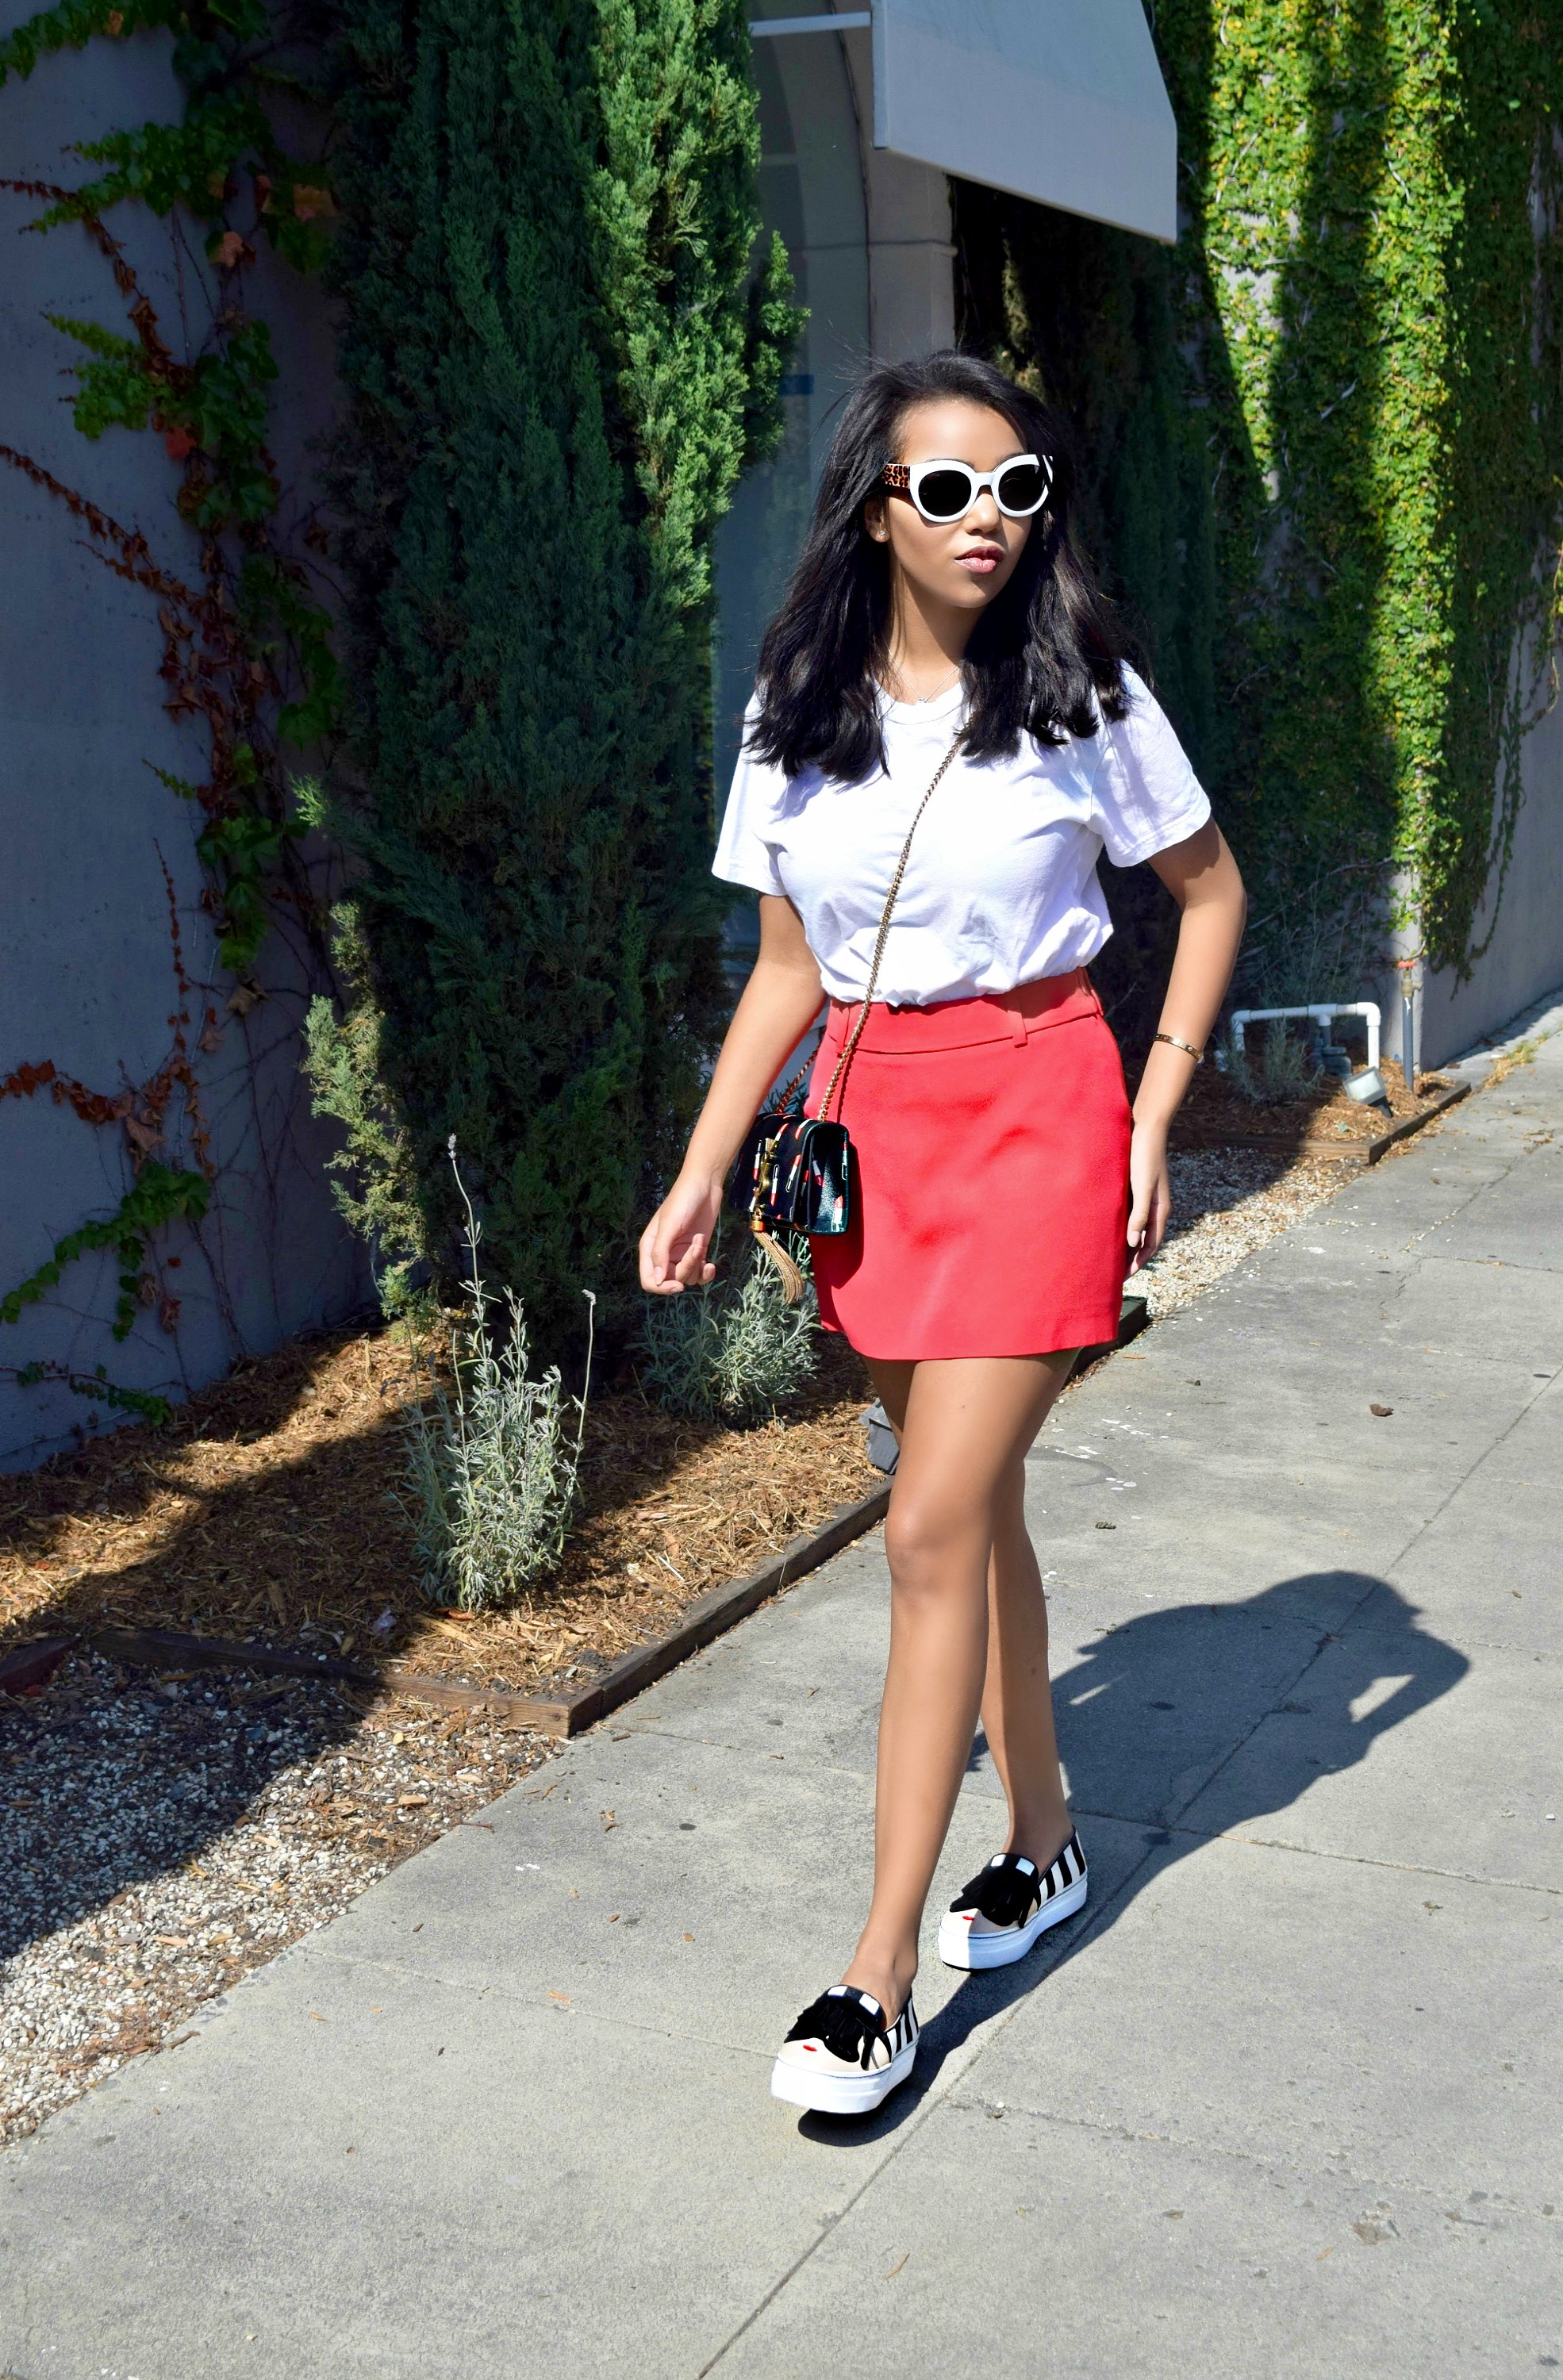 Off Duty In LA, Los Angeles Casual Summer Street Style: To Style, With Love